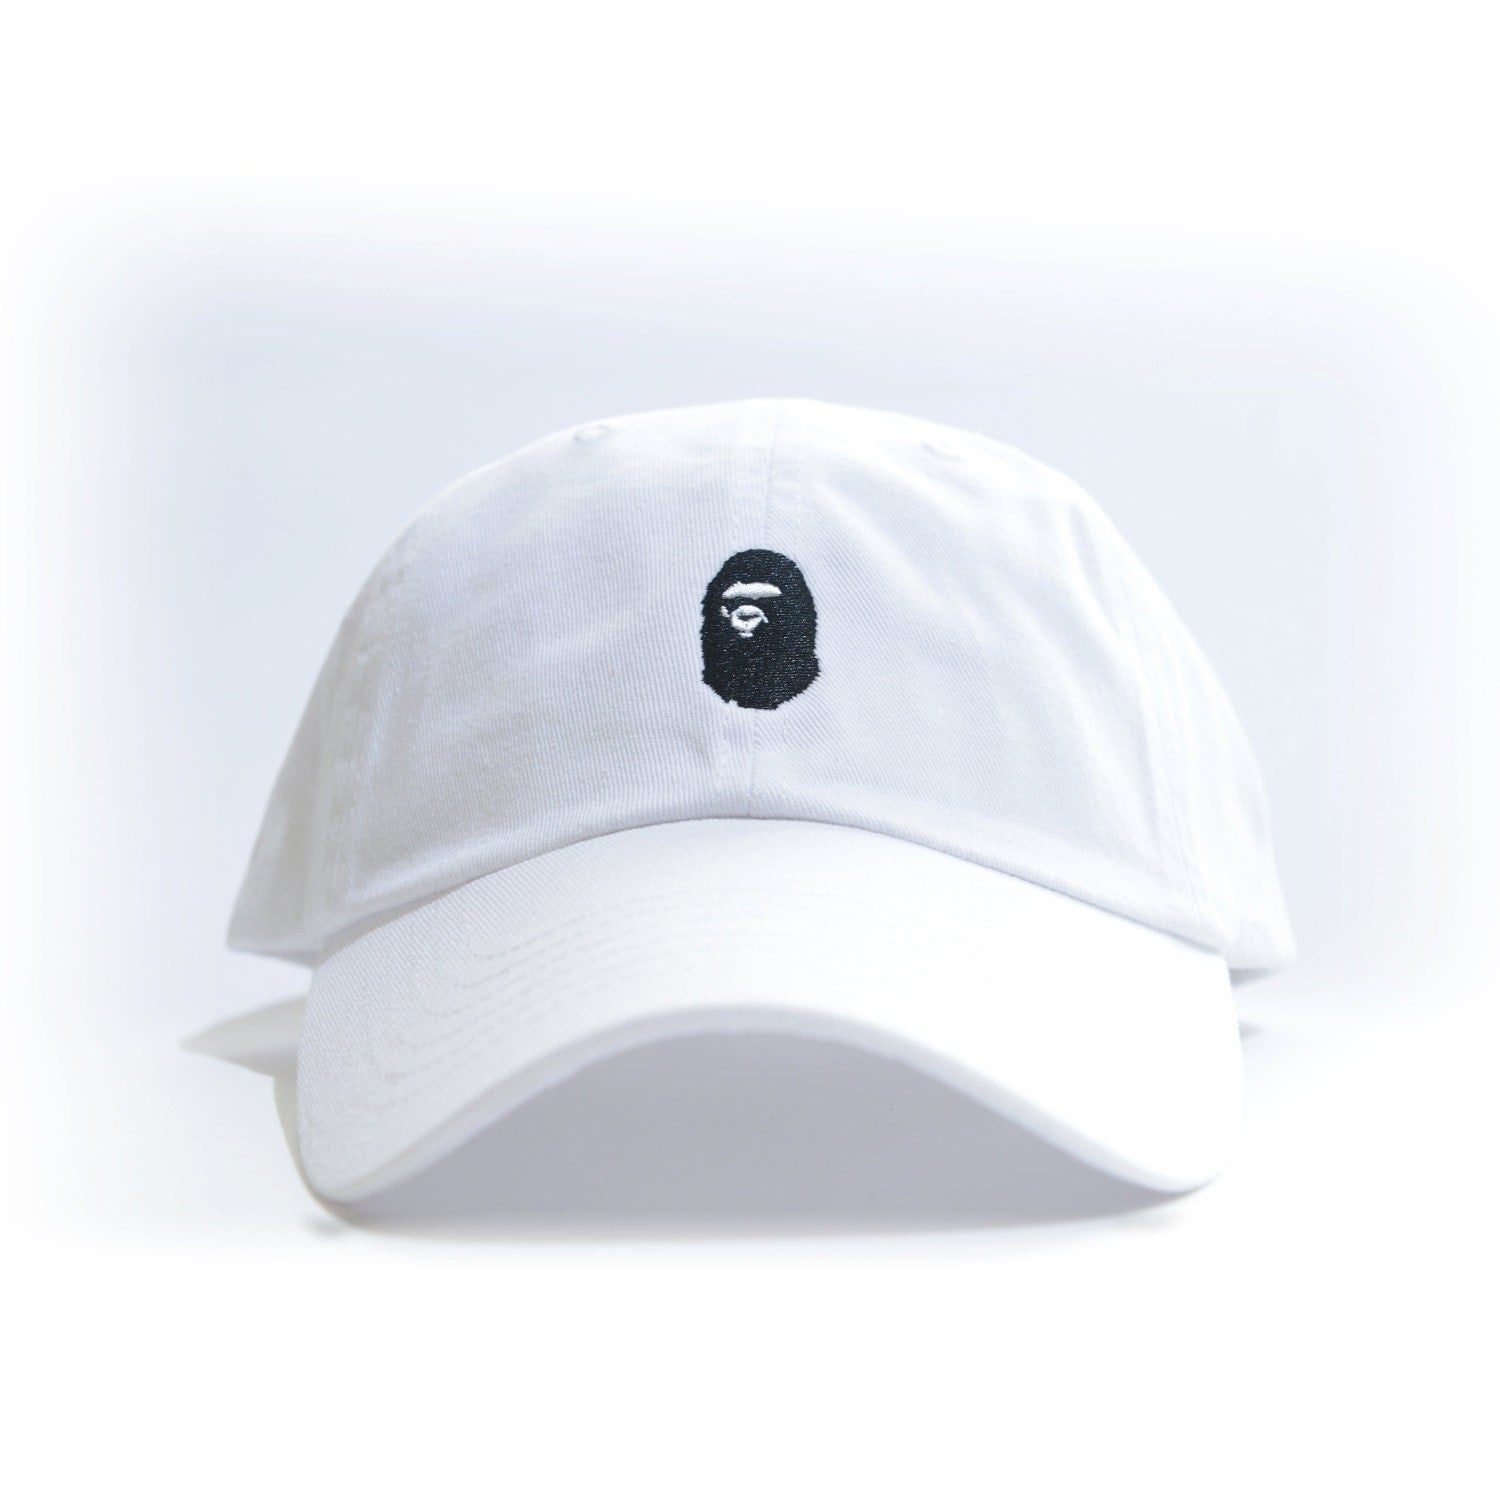 White baseball caps for crafts - Bape Embroidered Dad Hat Aape Bbc Bathing Ape Bapesta